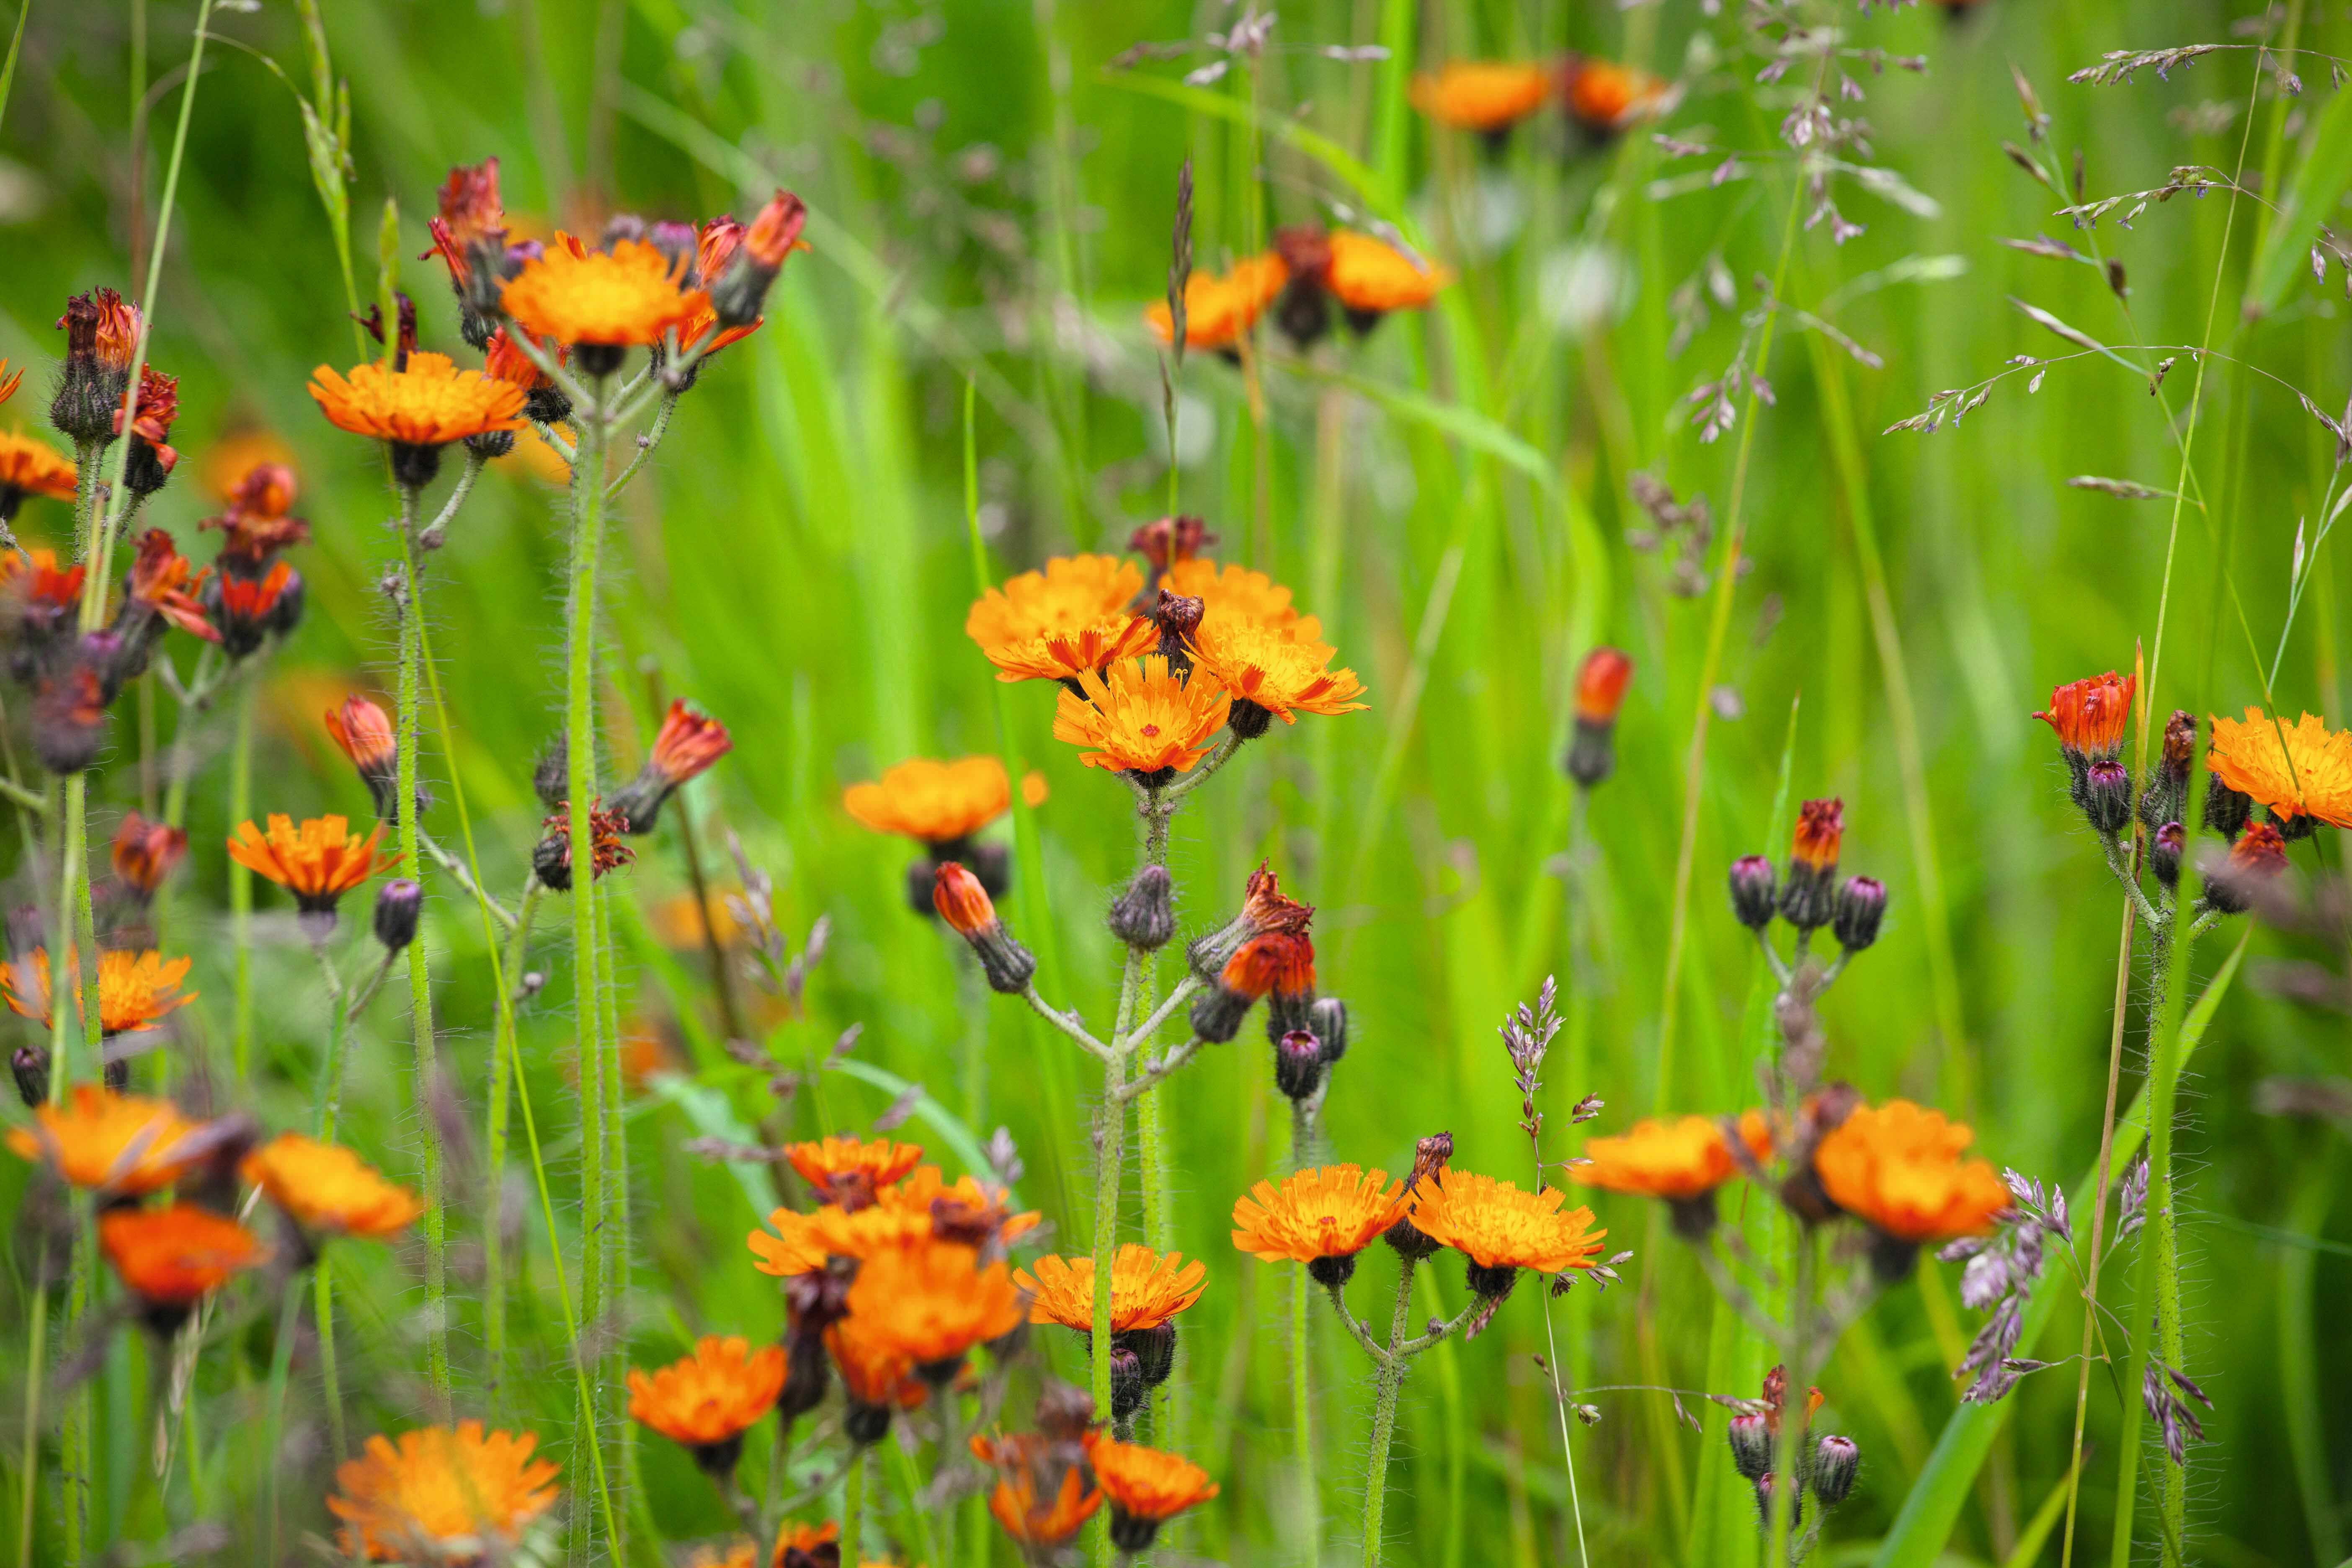 A close up of a colourful meadow